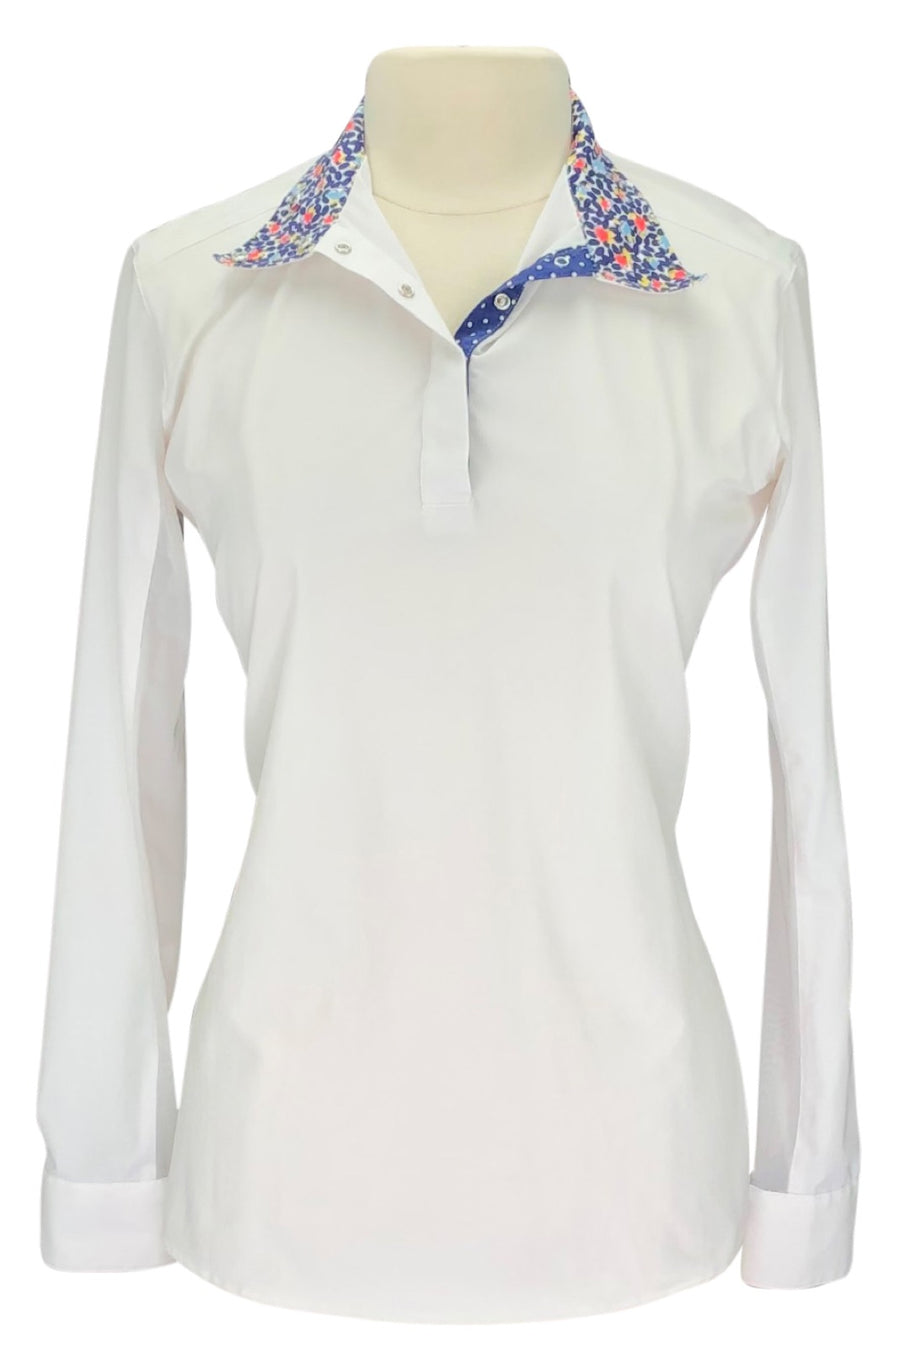 RJ Classics Classic Cool Prestige Show Shirt  in White and Blue Pattern